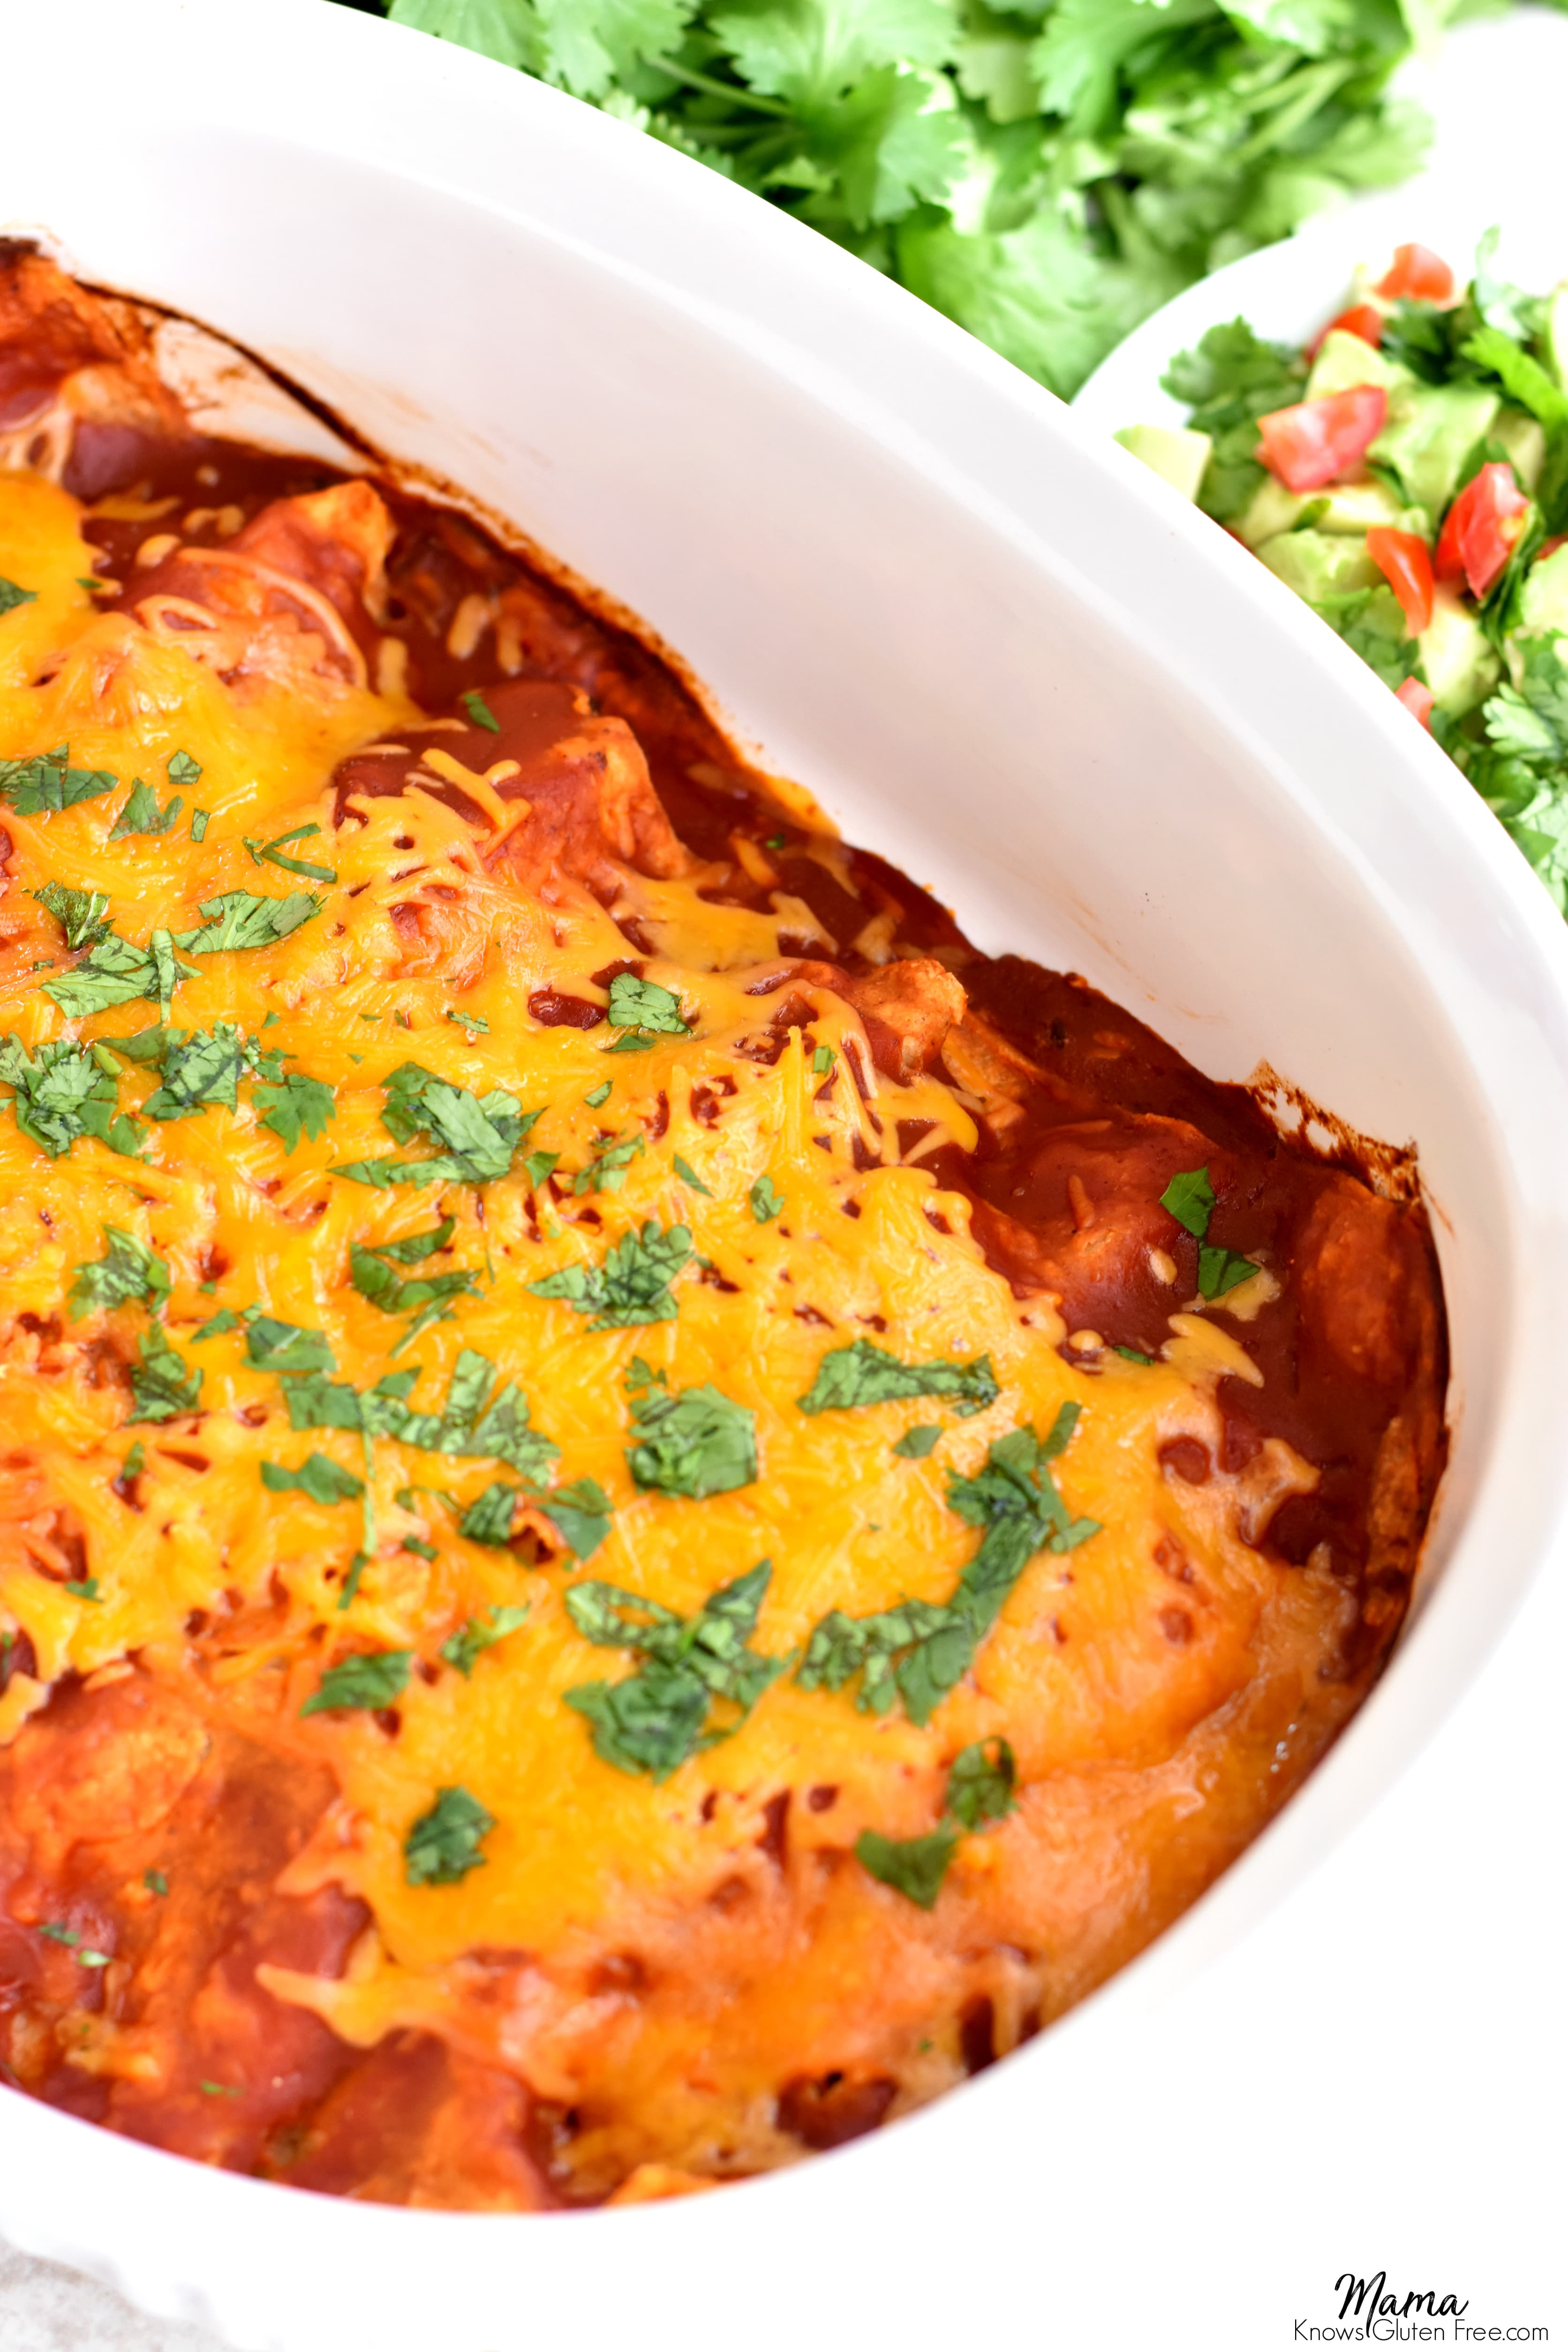 casserole dish of gluten-free beef and cheese enchiladas with salsa and cilantro in the background